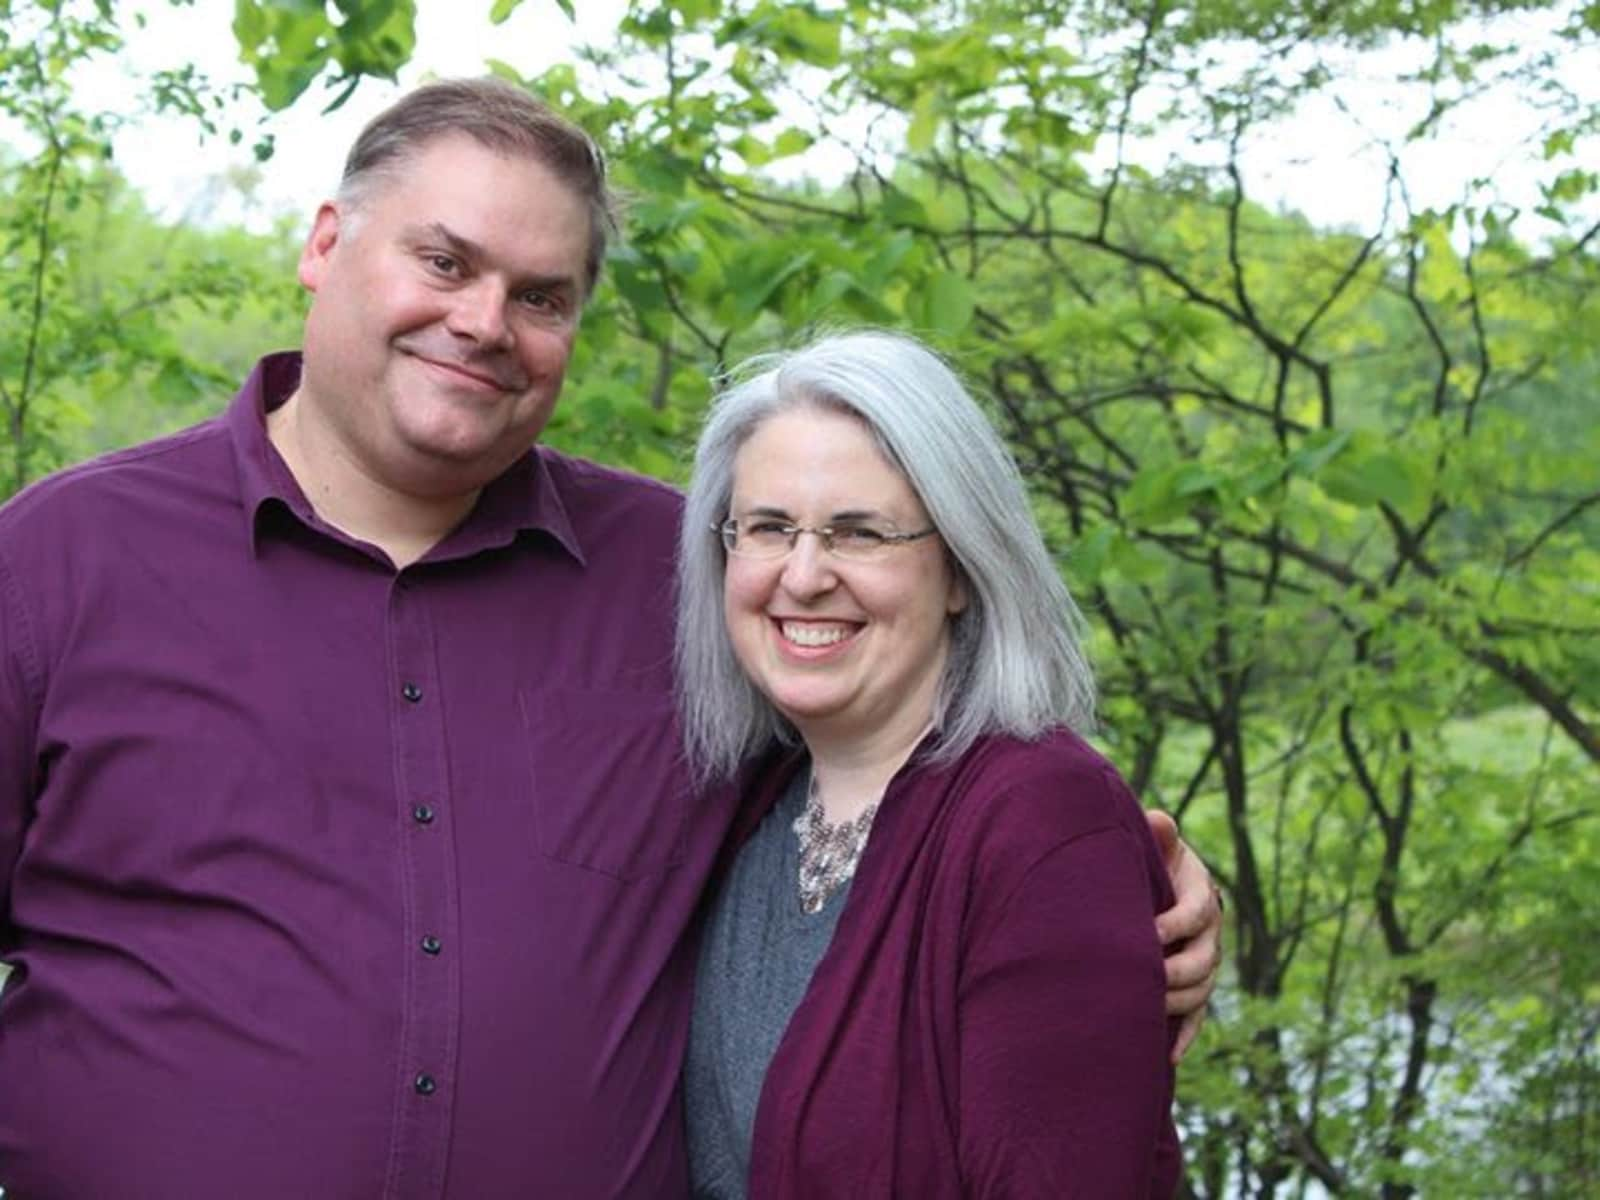 Richard & Andrea from Erin, Ontario, Canada